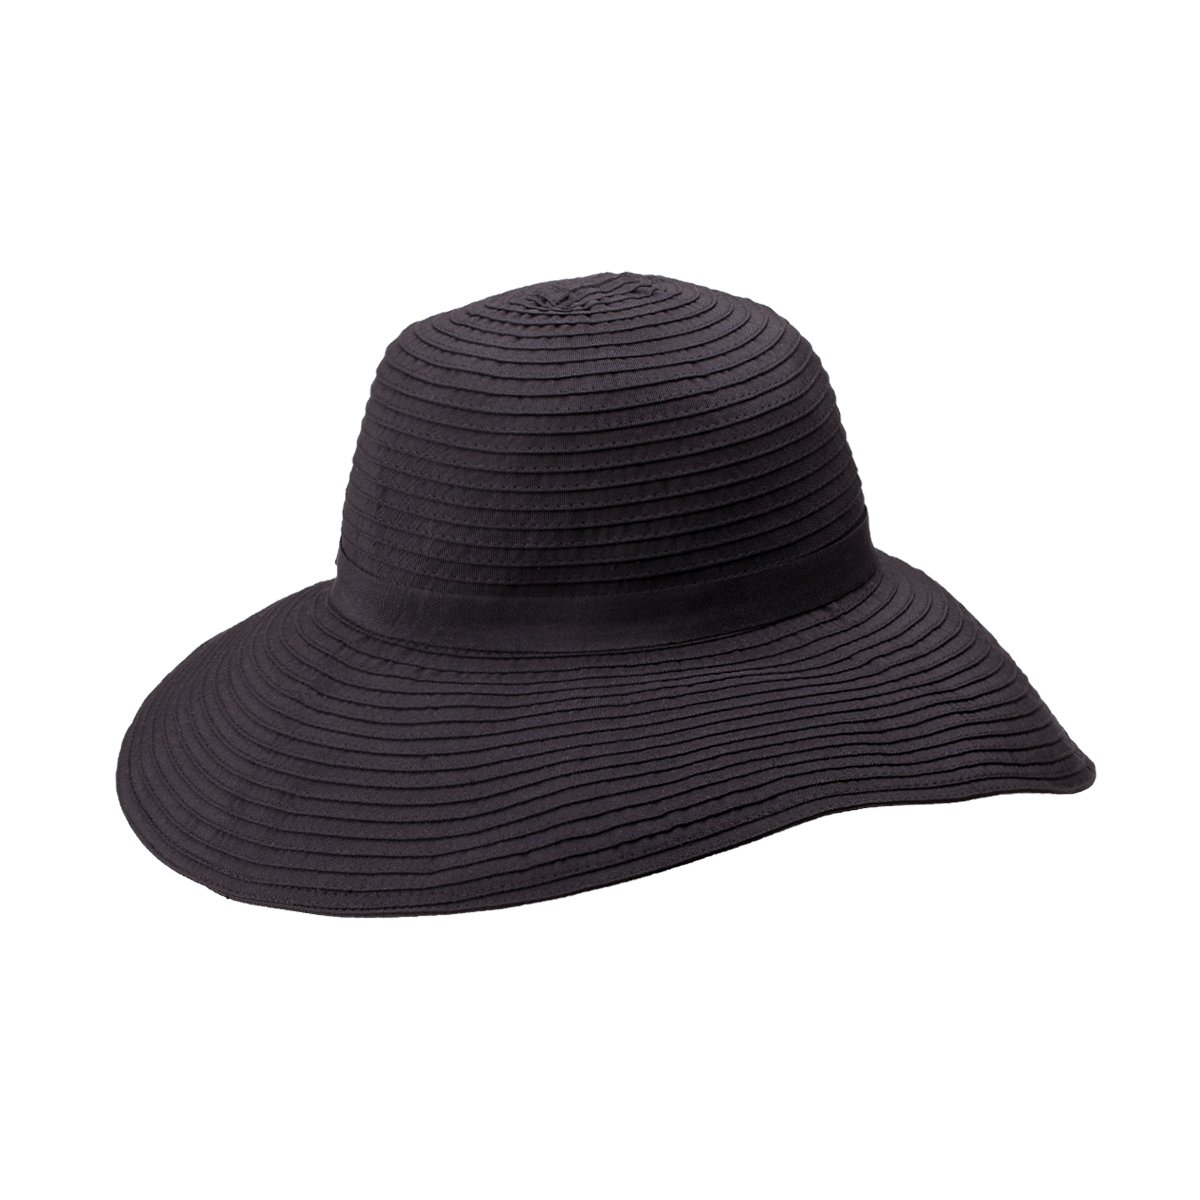 7c8583212ba59 Peter Grimm Womens Janet Resort Sun Hat - Black at Amazon Women s Clothing  store